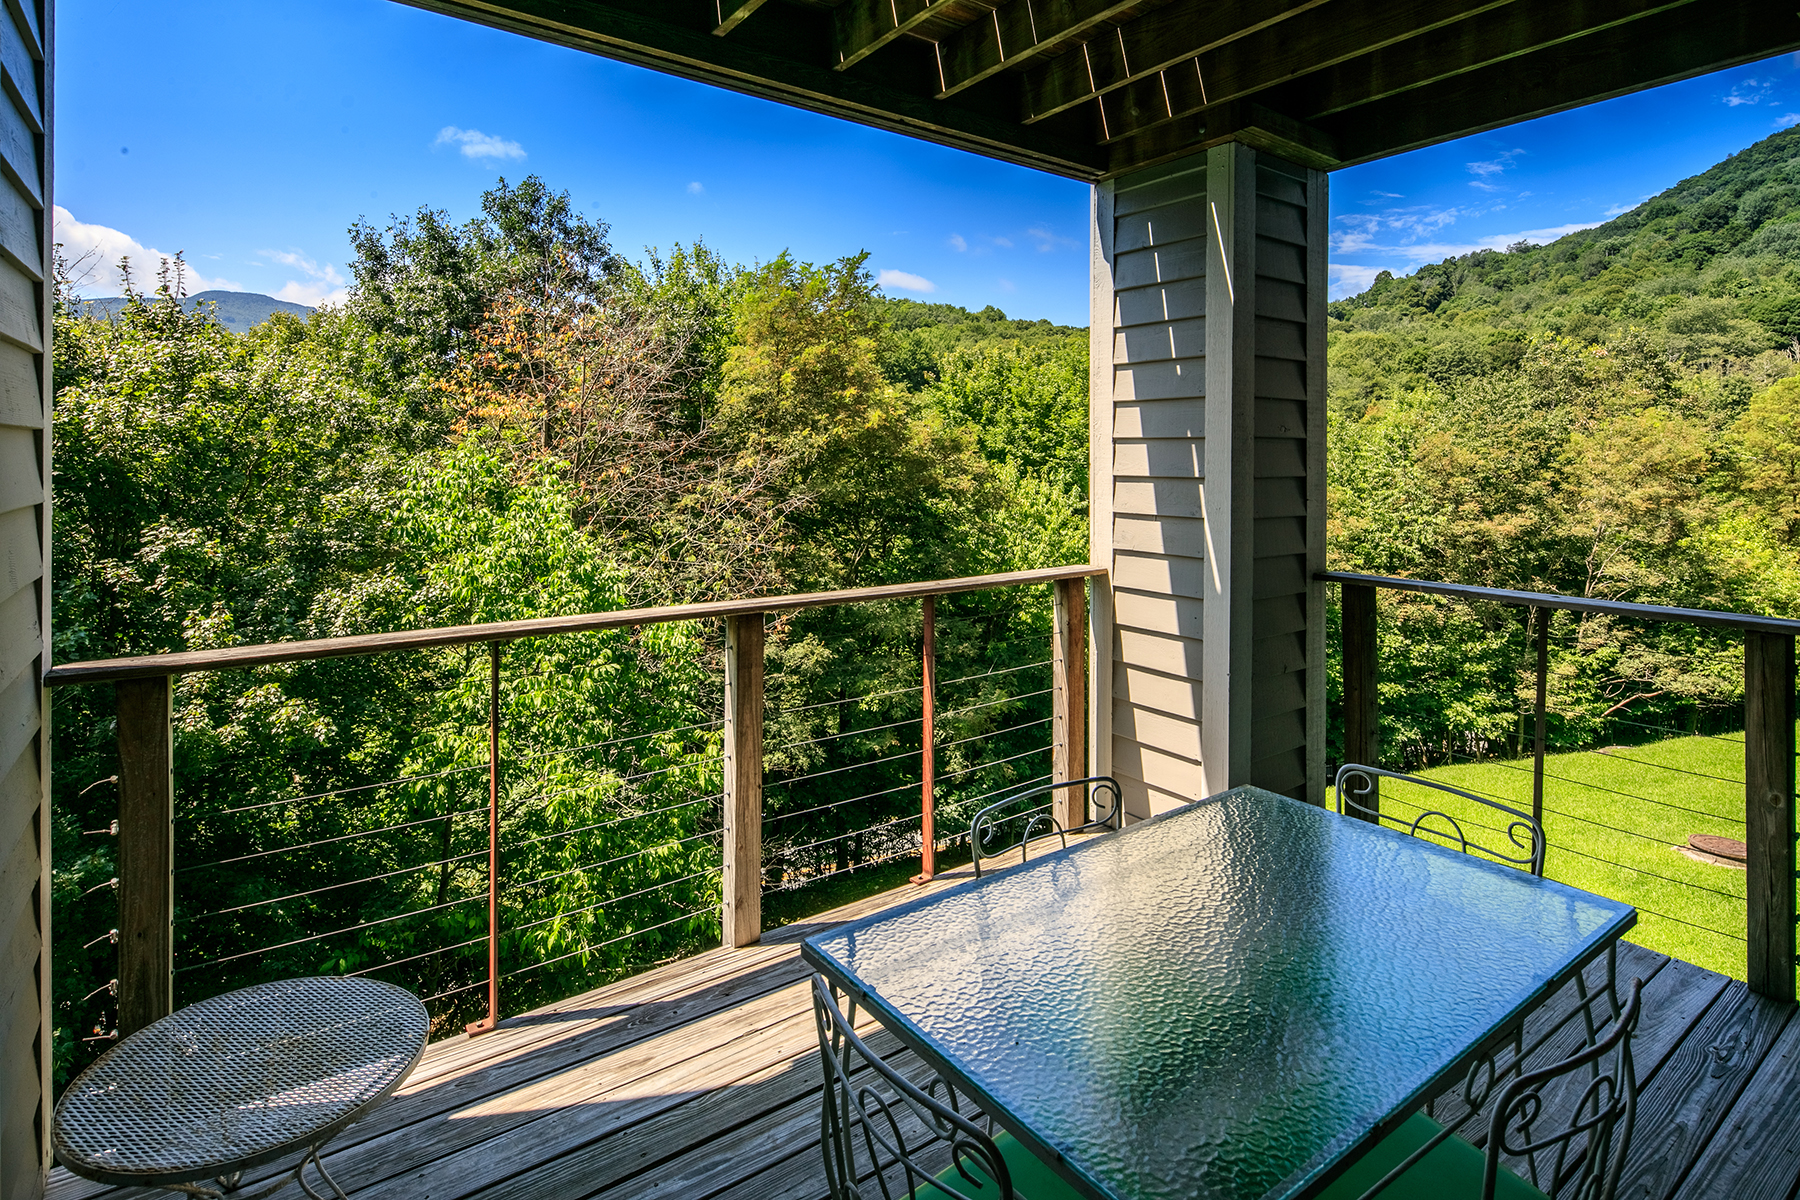 Single Family Homes for Active at SEVEN DEVILS - HAWKS PEAK 143 Hawks Peak Ln , 112 Seven Devils, North Carolina 28604 United States